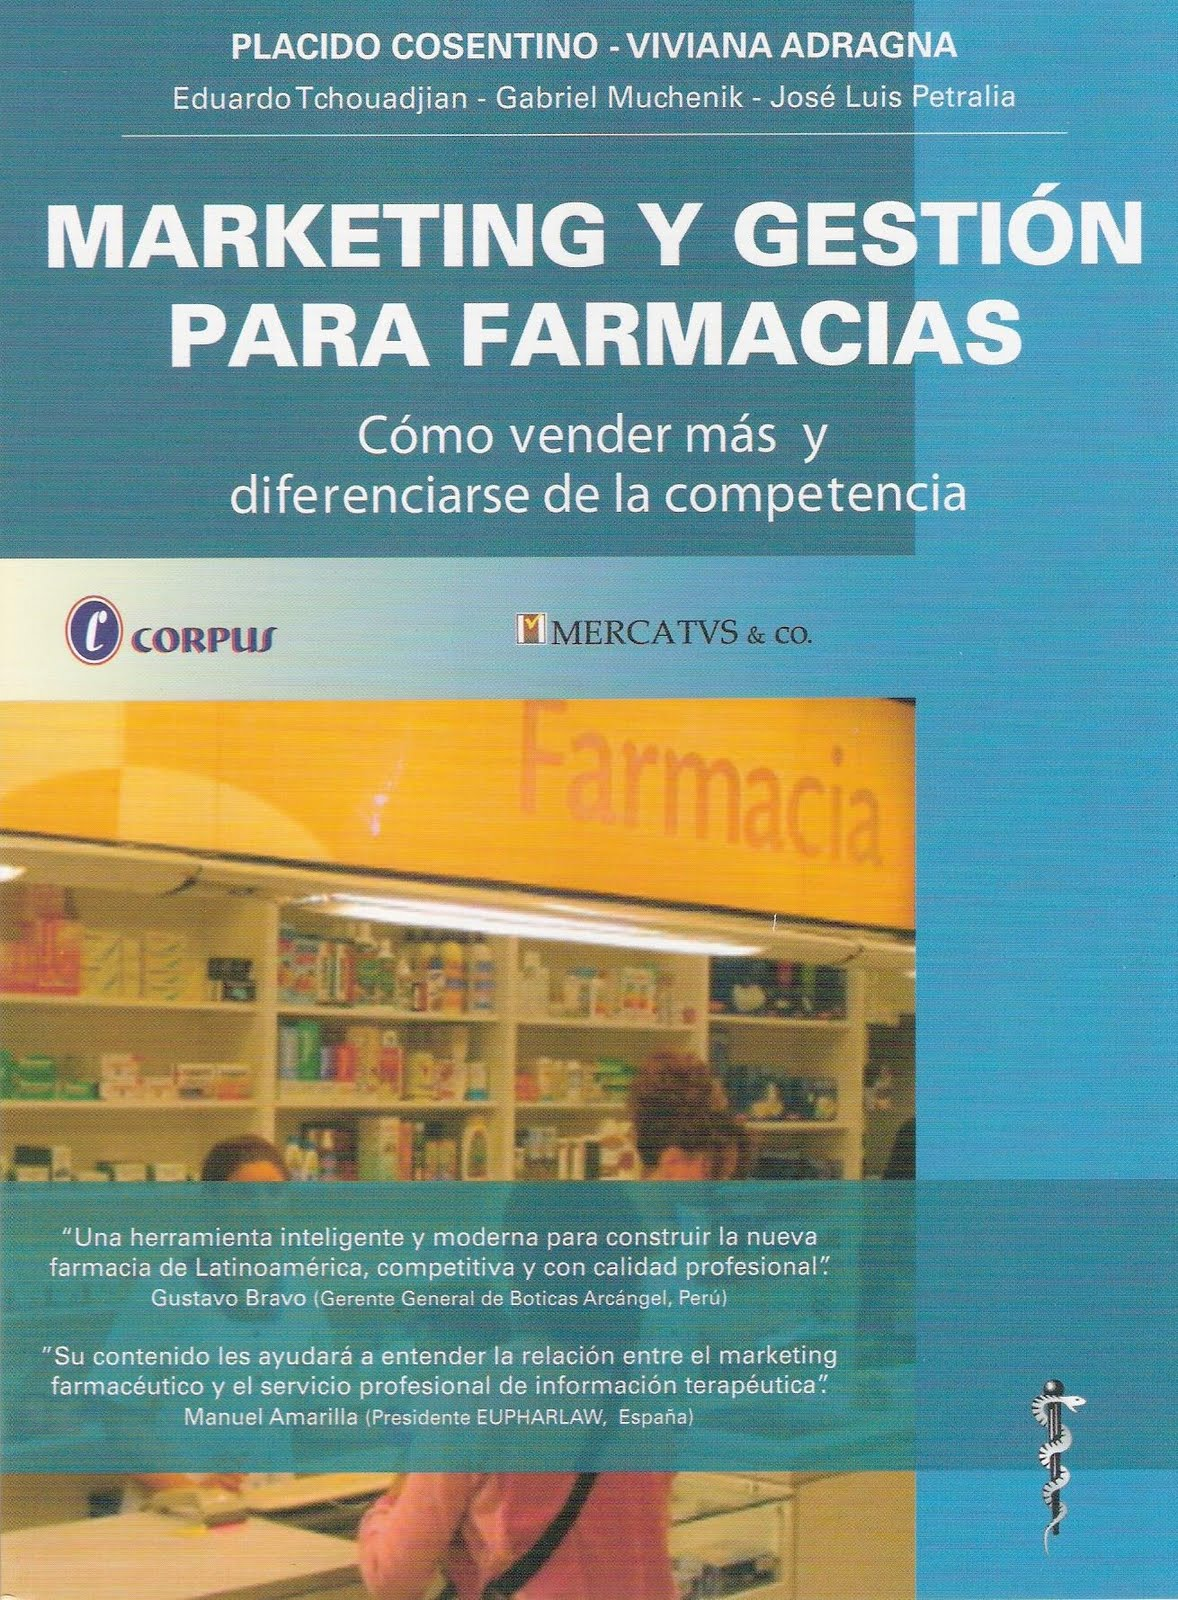 Libros De Farmacia PharmacoserÍas Marketing Farmacéutico Pharmaceutical